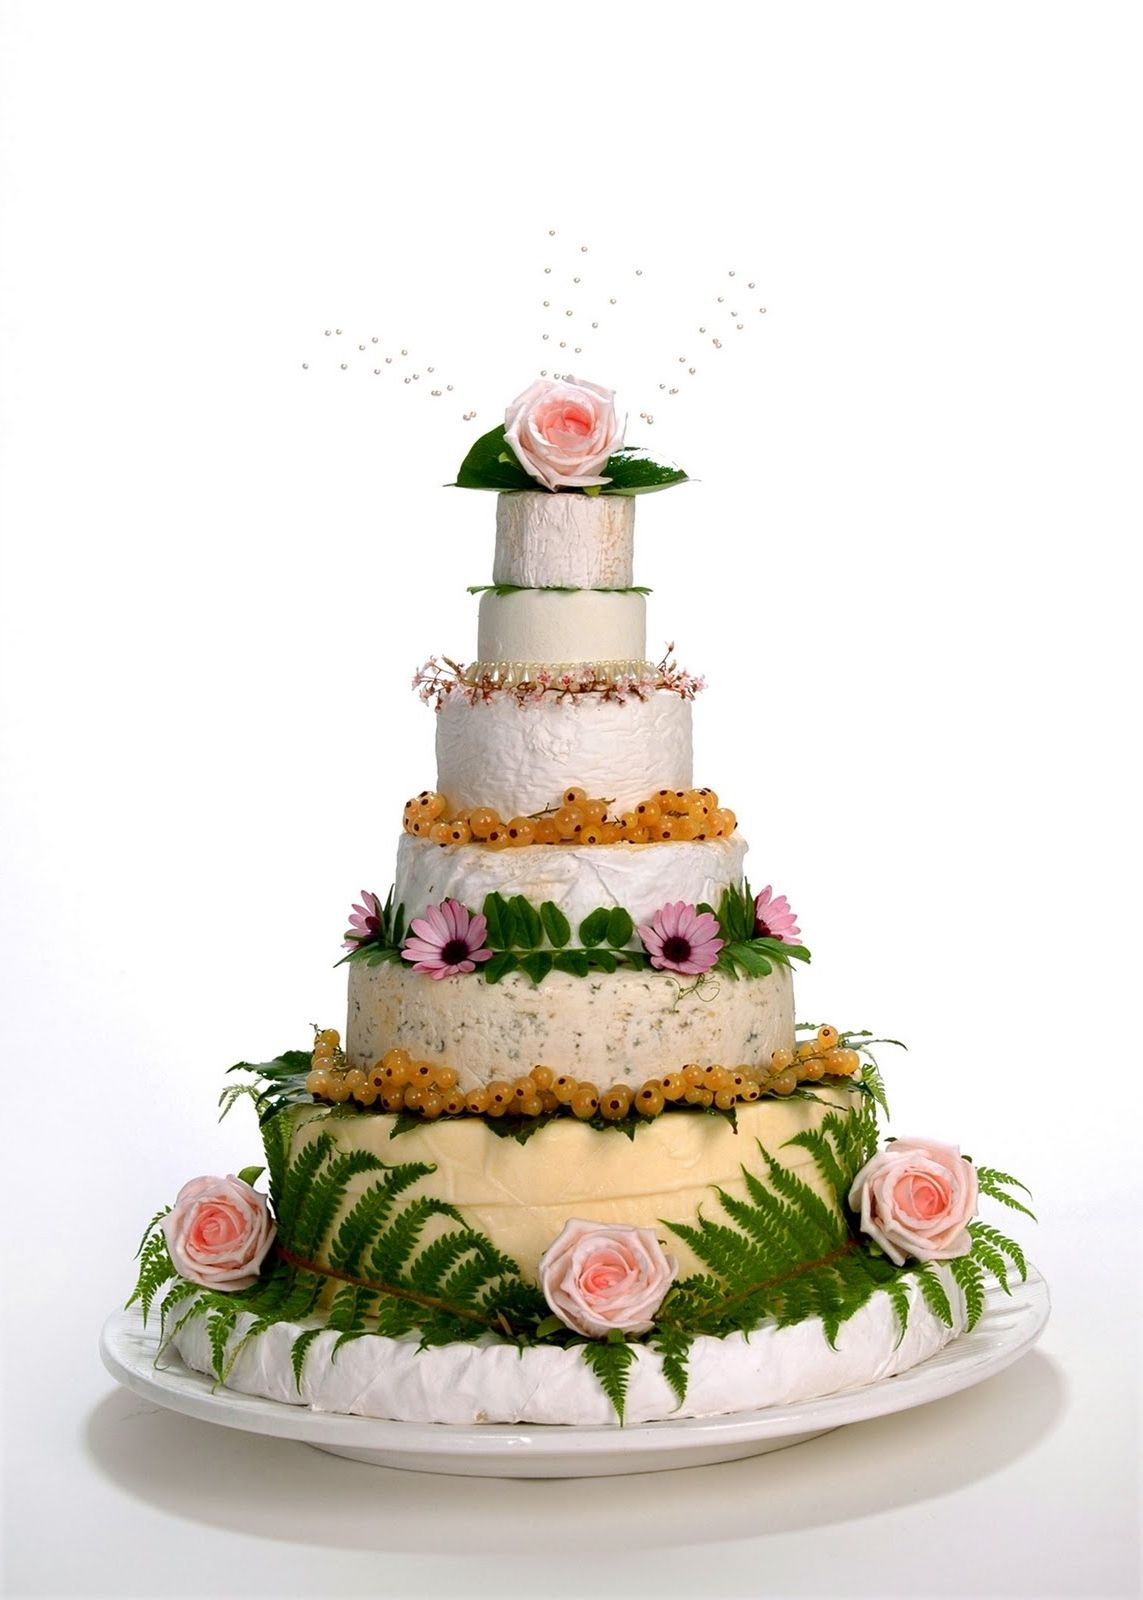 Wedding Cakes Made Out Of Cheese | Wedding Dress | Pinterest ...